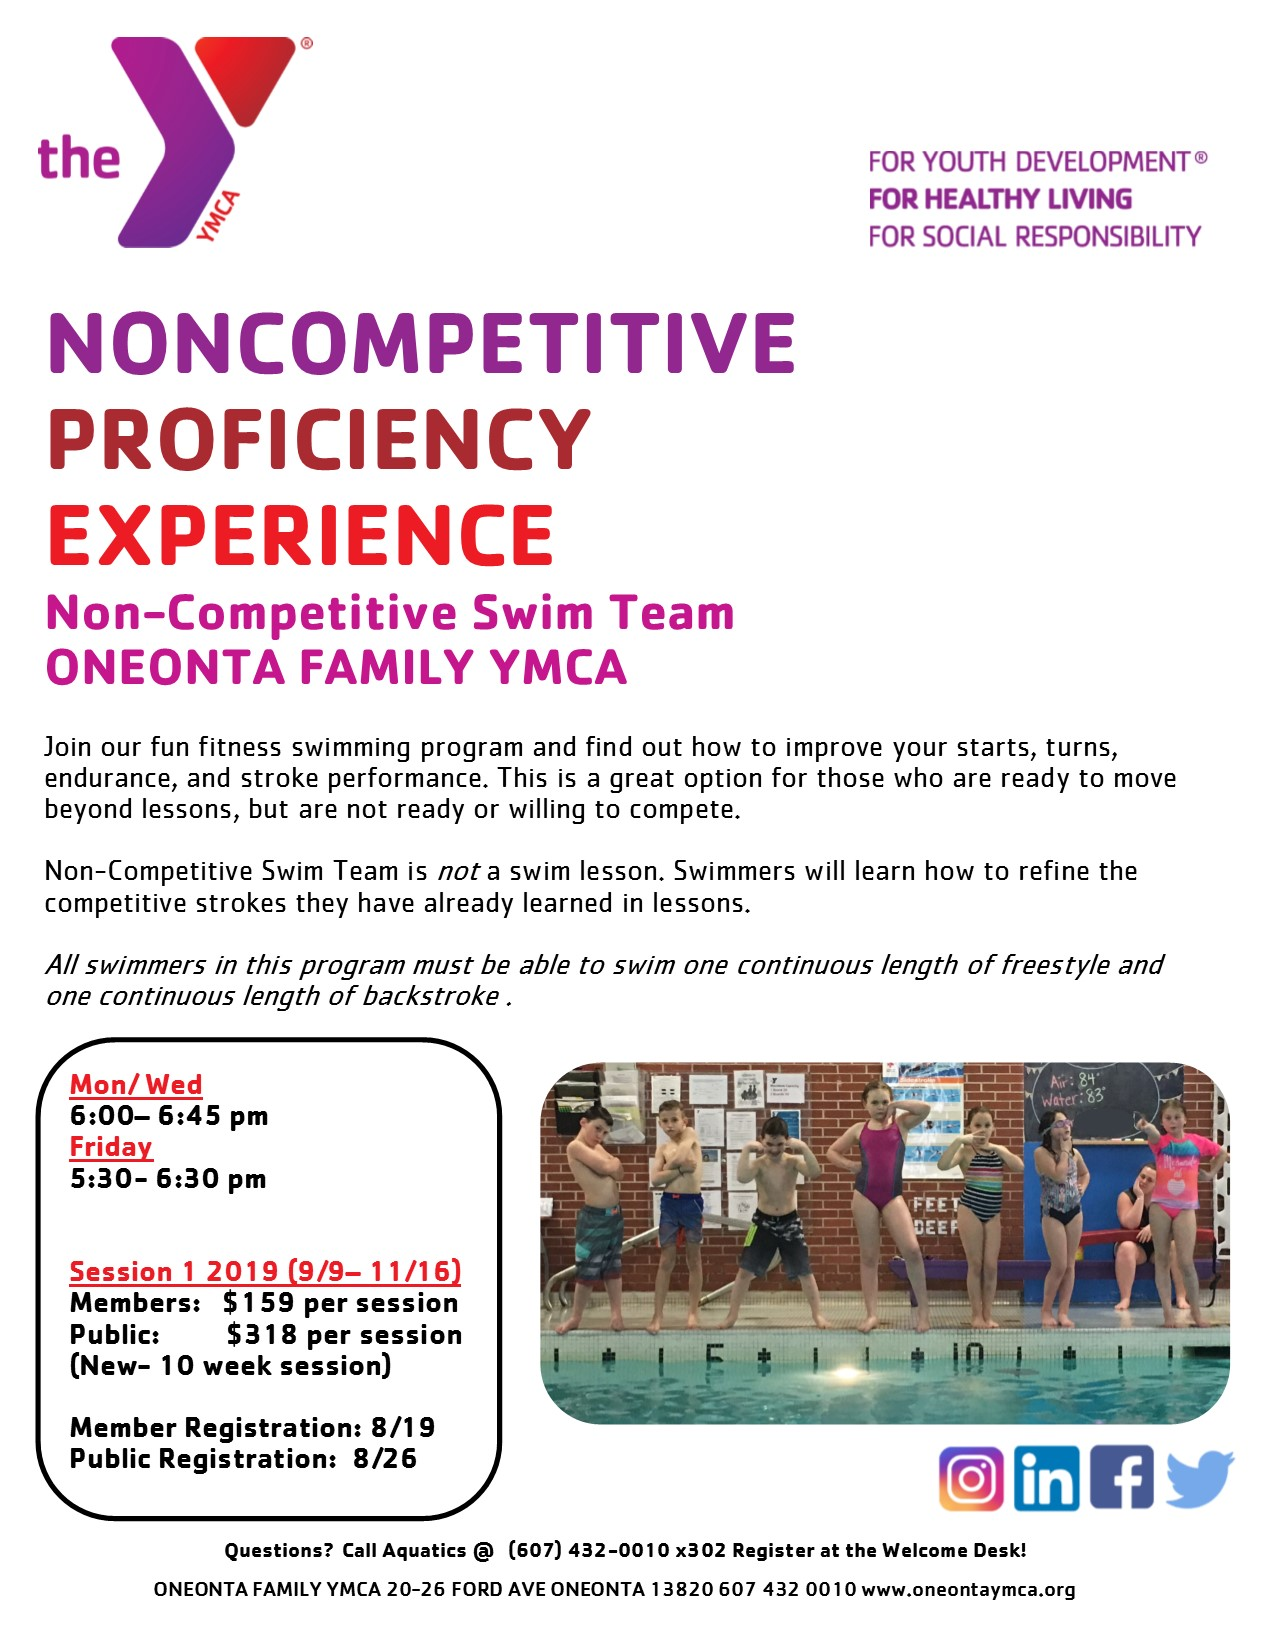 Non-Competitive Swim Team